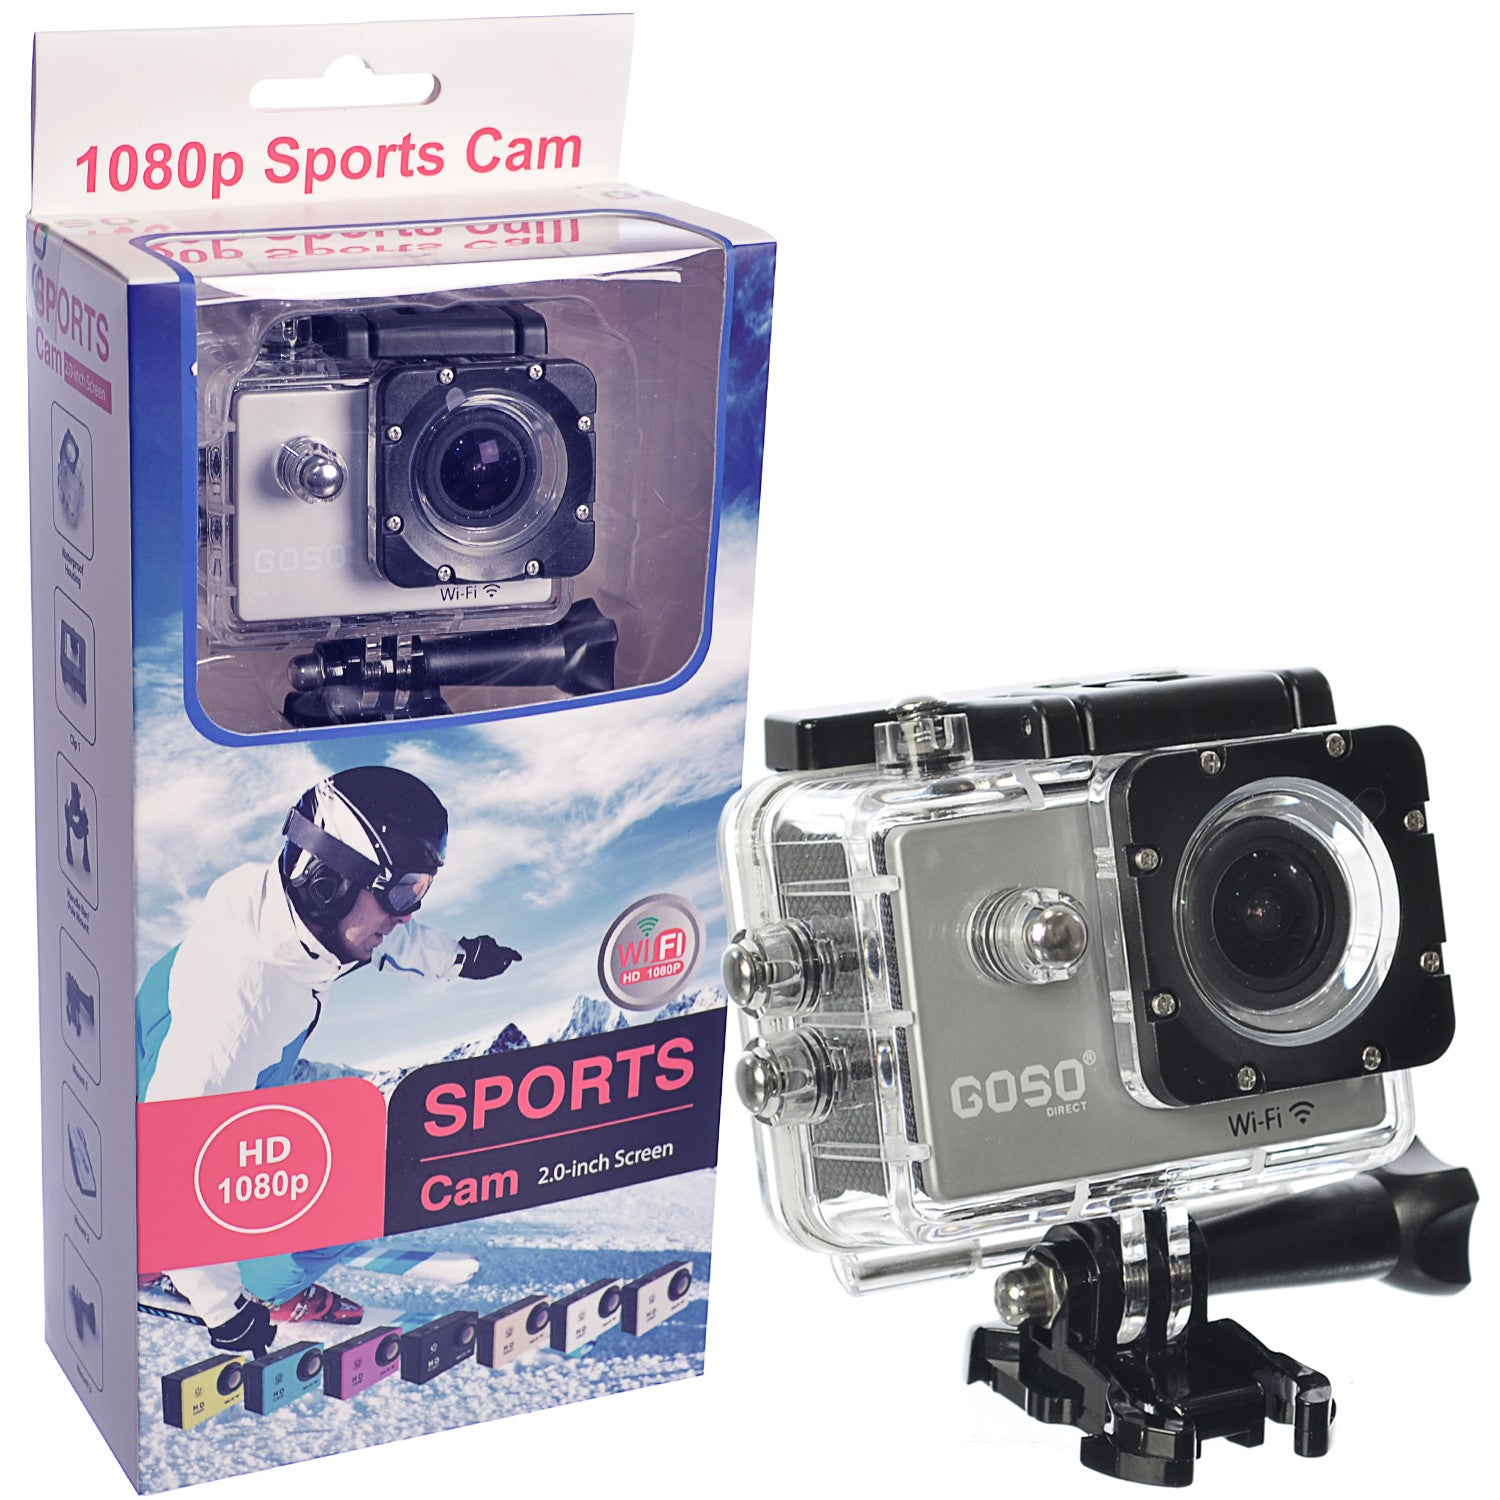 sports cam hd action camera p bikes sat navs autocars blog. Black Bedroom Furniture Sets. Home Design Ideas